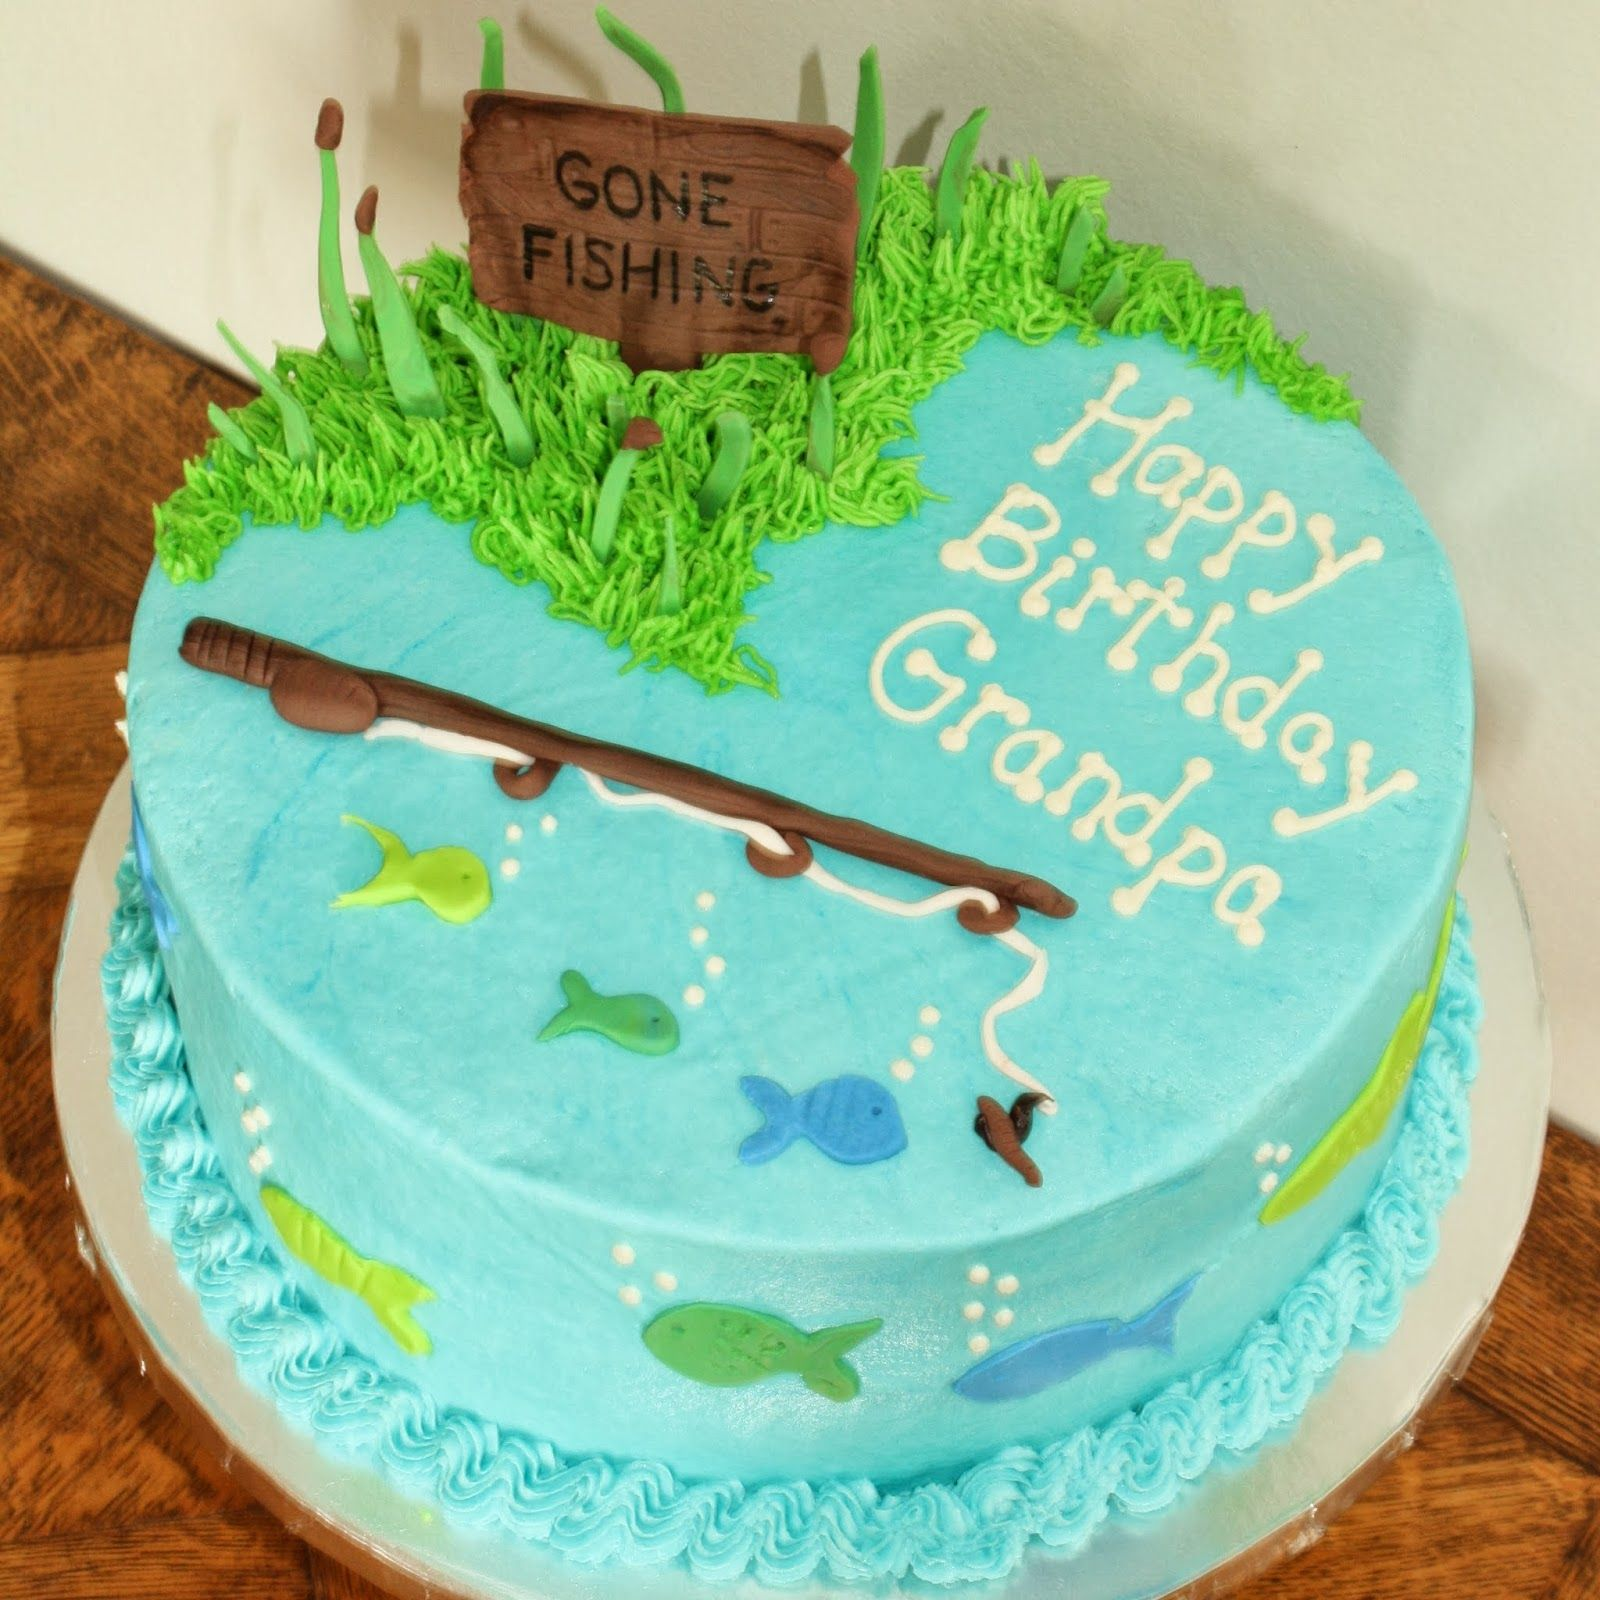 Marvelous This Cake Was Yellow Cake With Buttercream Filling And Frosting Funny Birthday Cards Online Alyptdamsfinfo